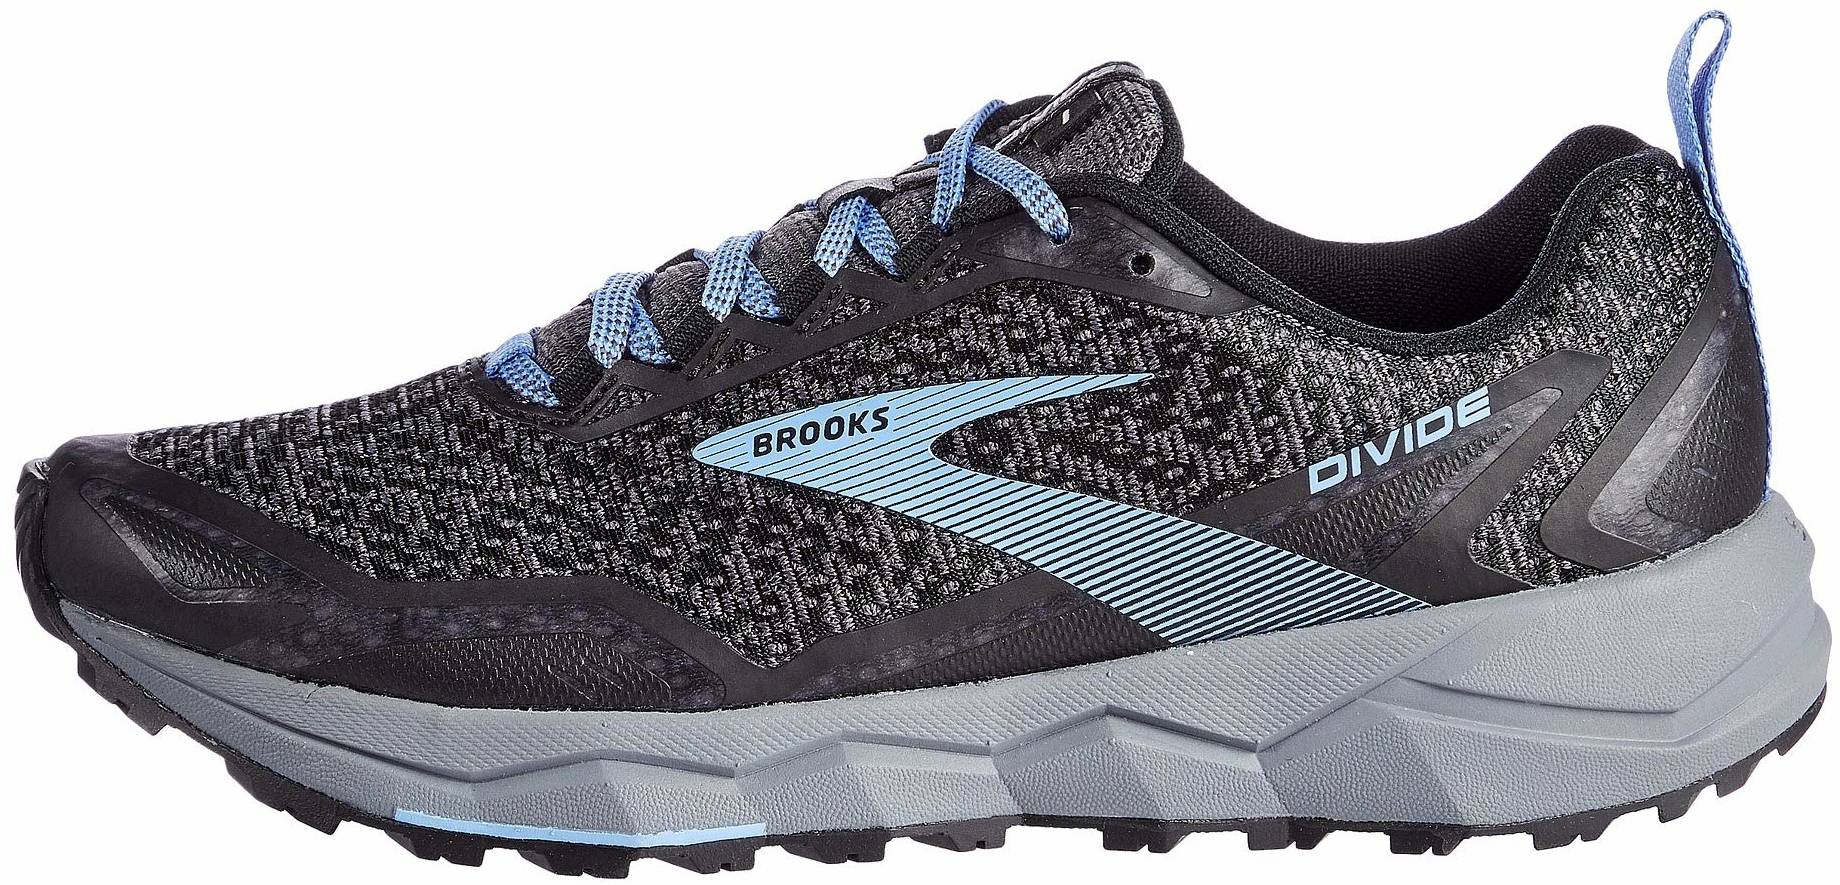 Save 33% on Brooks Trail Running Shoes